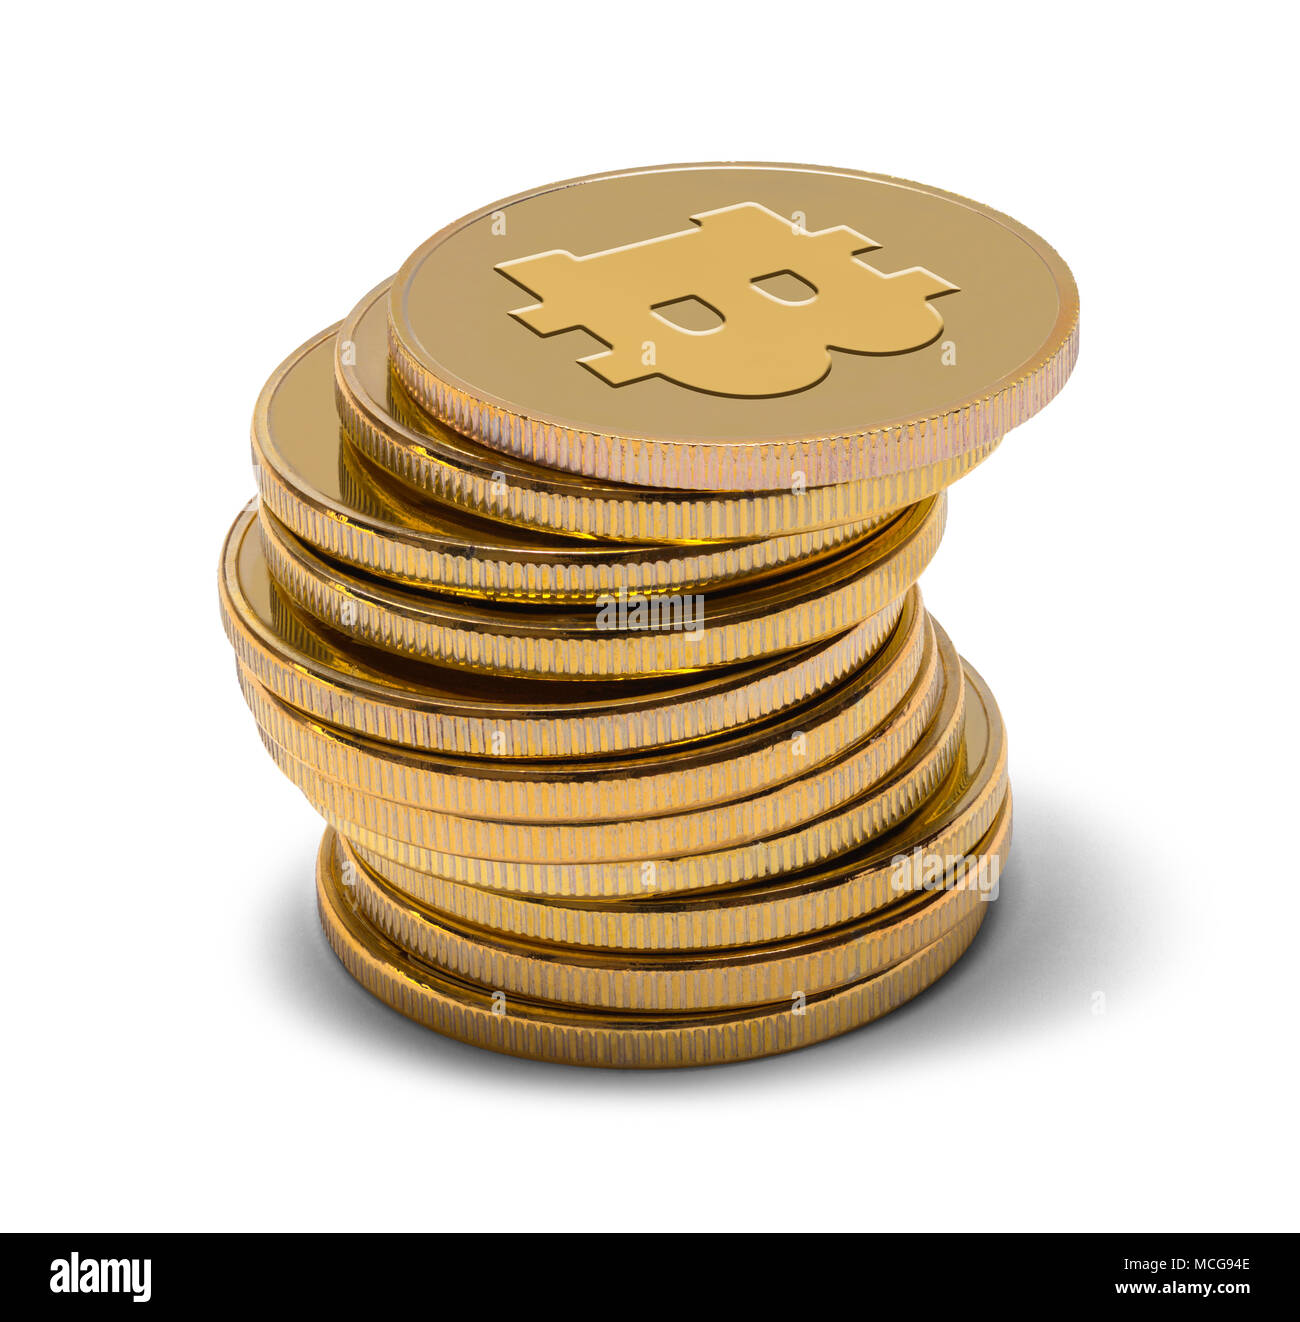 Stack of Gold Bitcoins Isolated on a White Background. - Stock Image